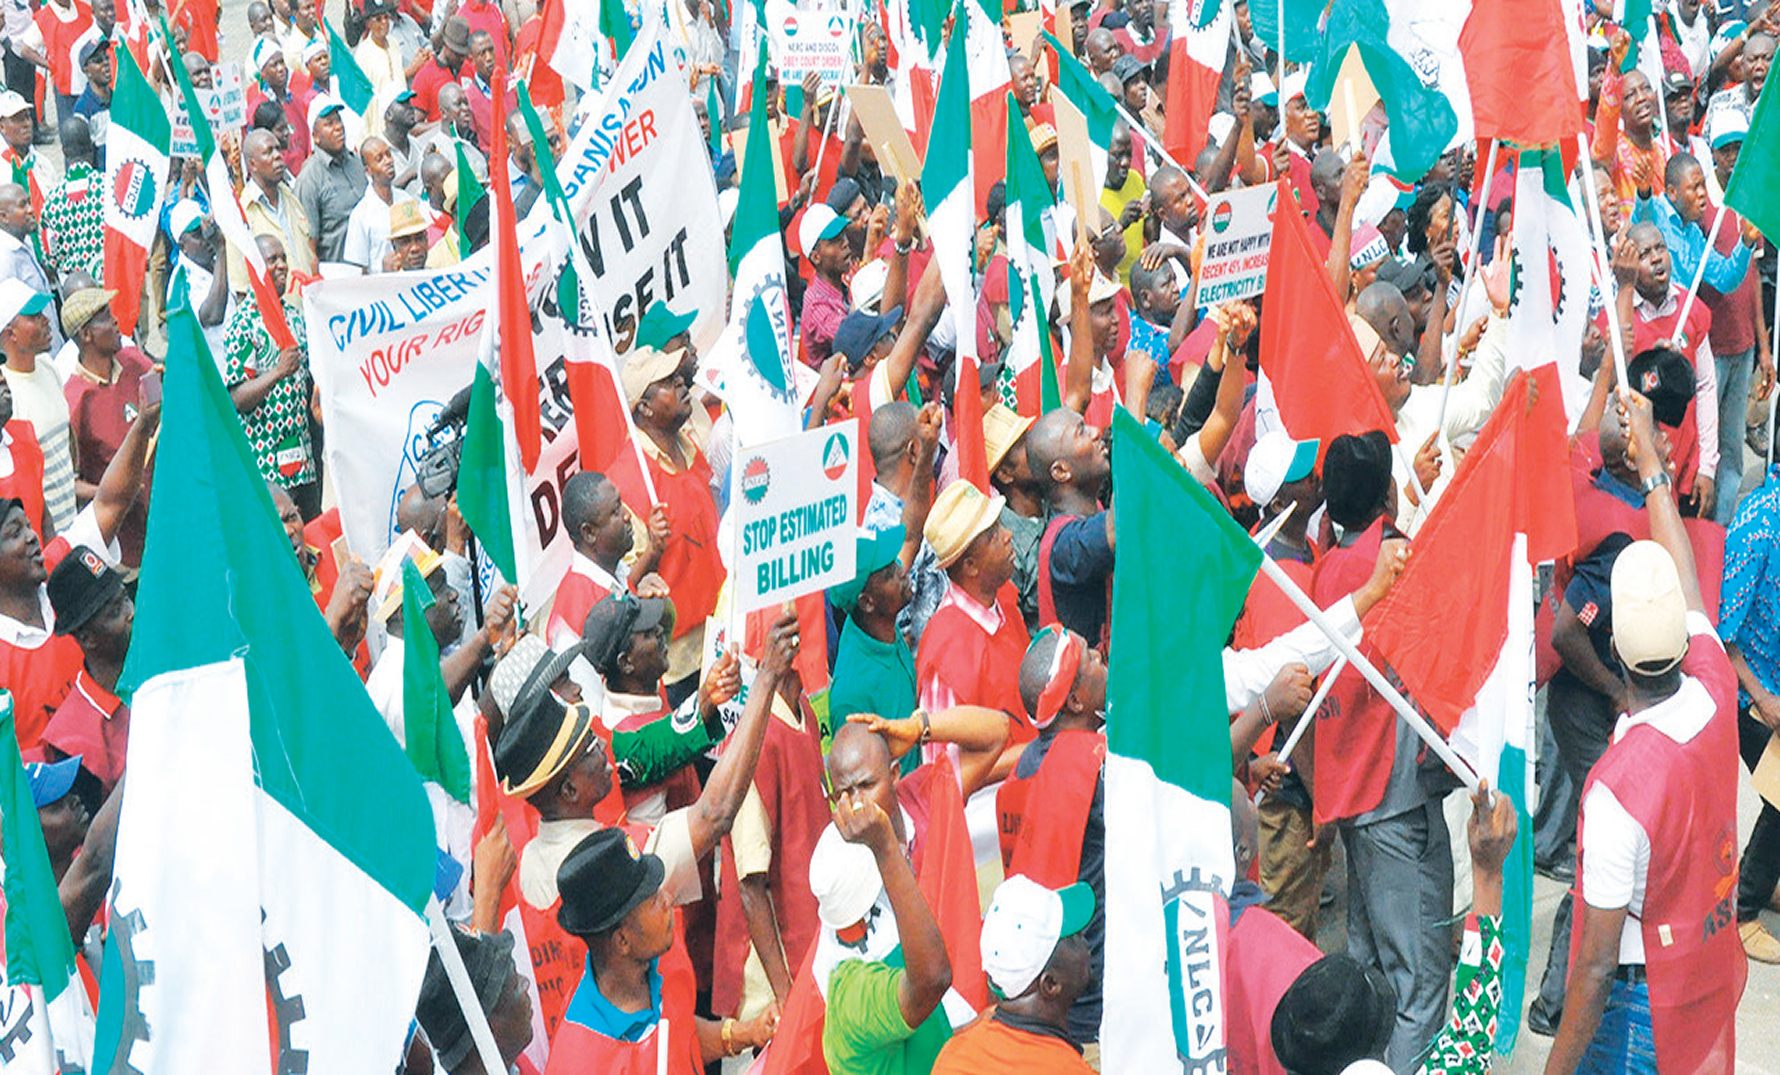 Decent Work Day: Putting an end to 'starvation wages'